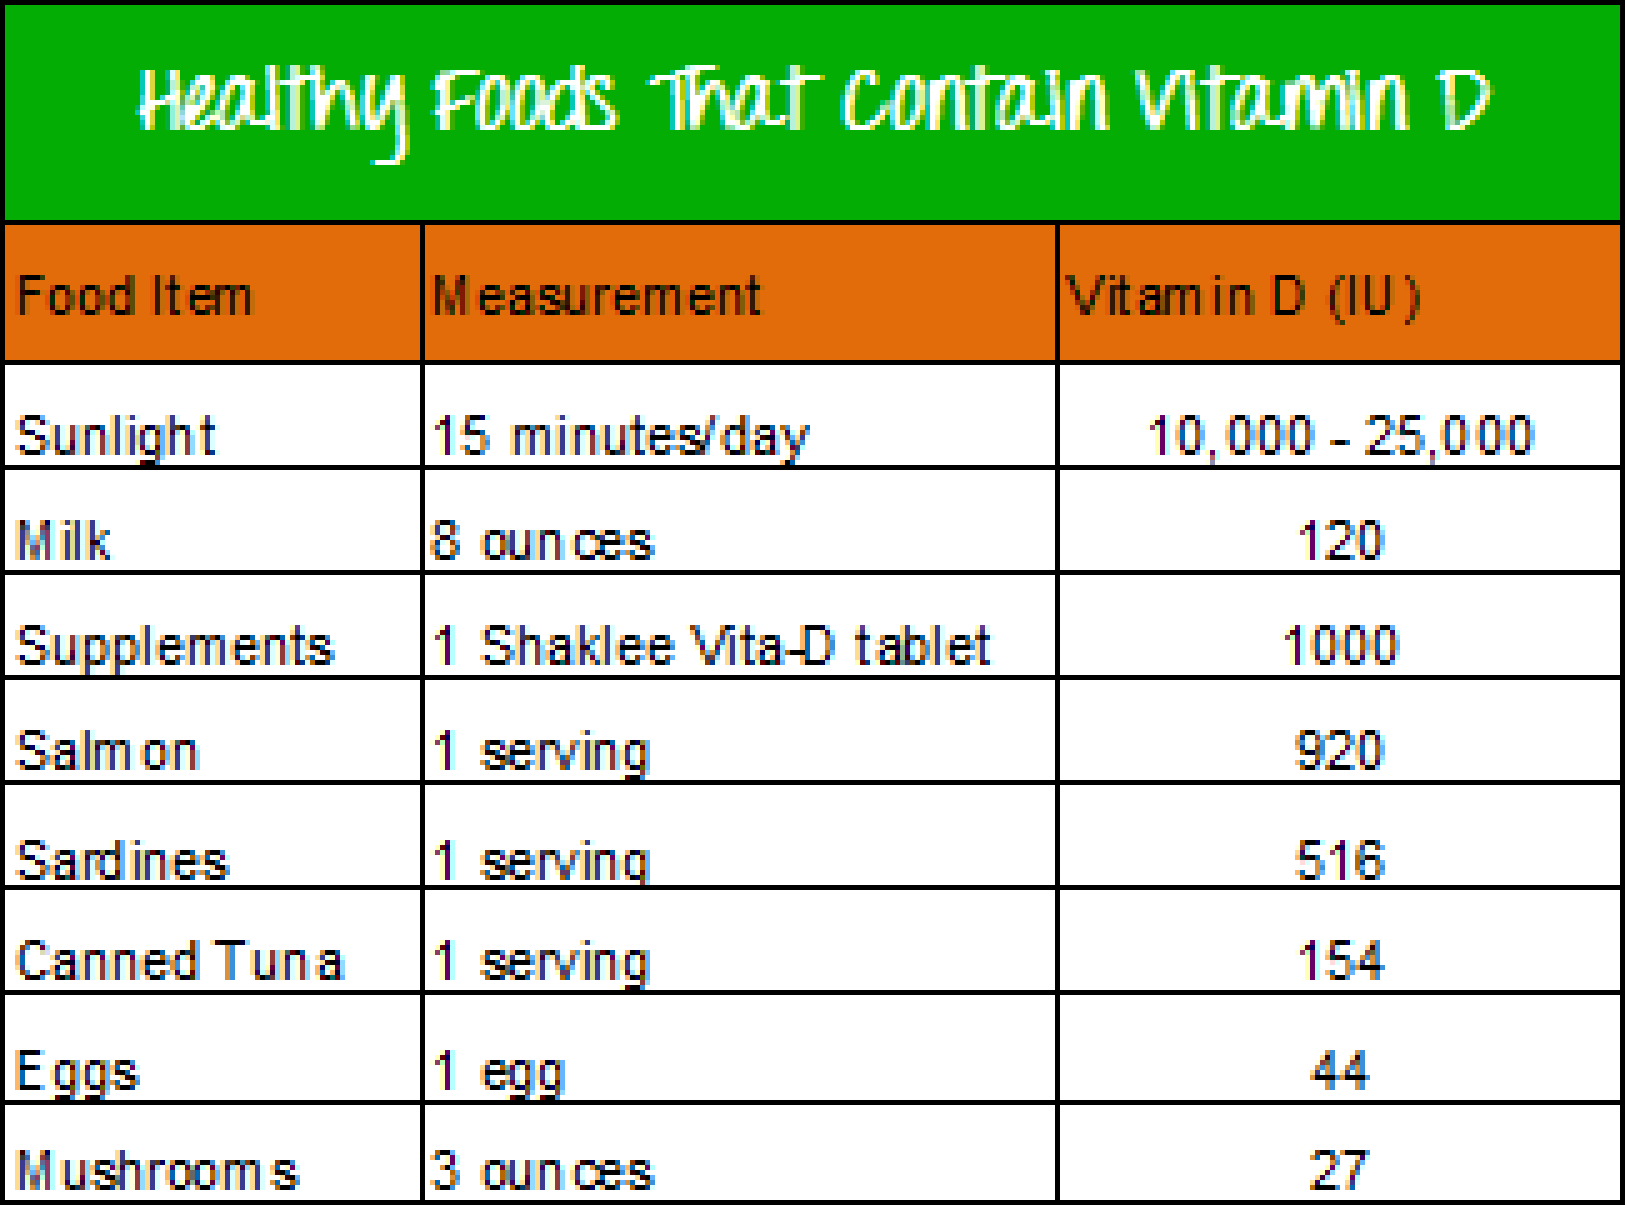 Food Sources With High Vitamin D